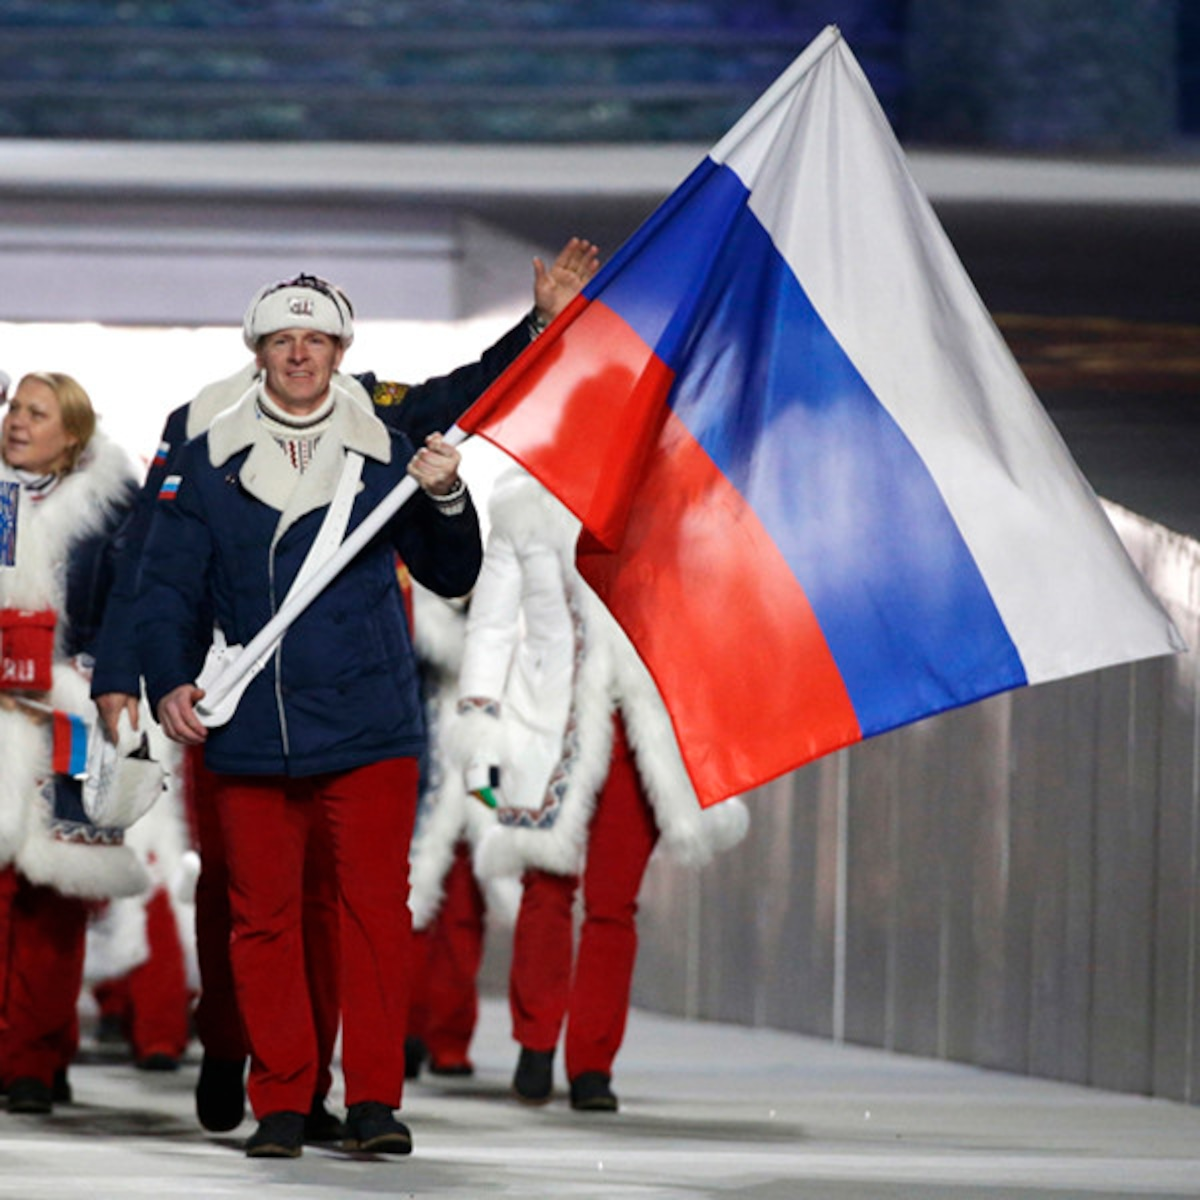 Russia Winter Olympics 2020.Russia Banned From 2020 Olympics Global Sports Over Doping